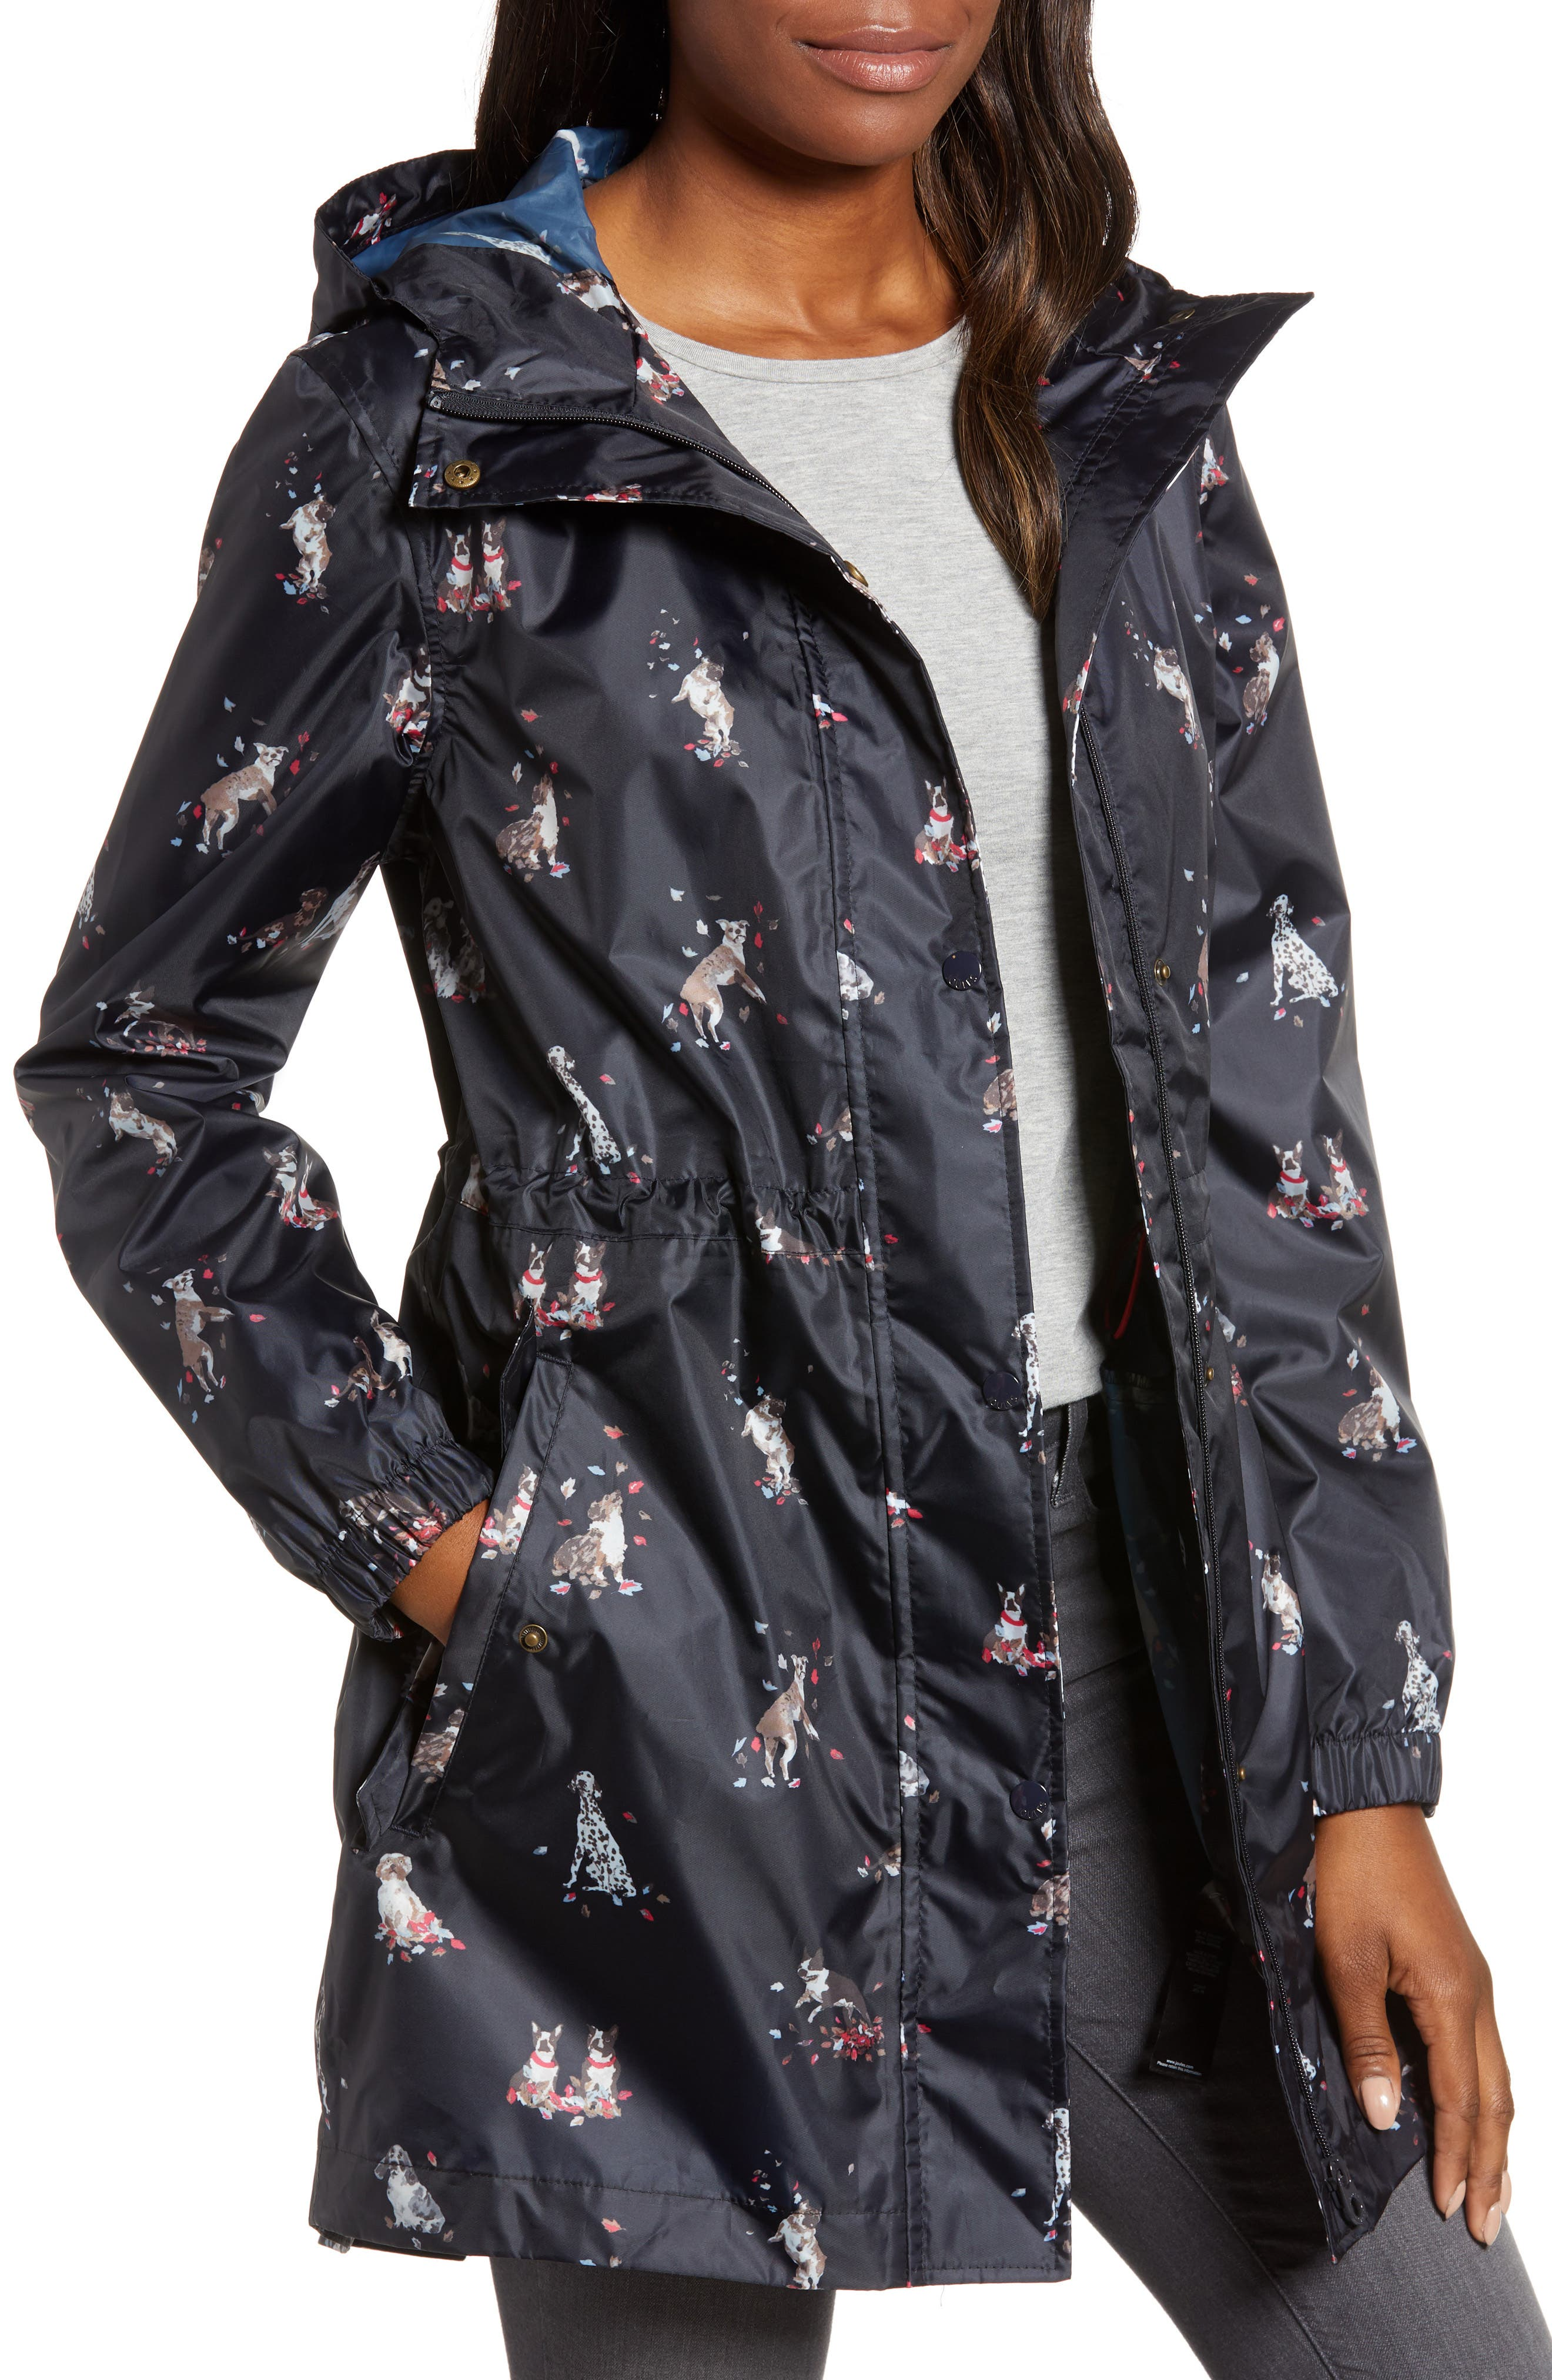 Right as Rain Packable Print Hooded Raincoat,                         Main,                         color, DOGS IN LEAVES